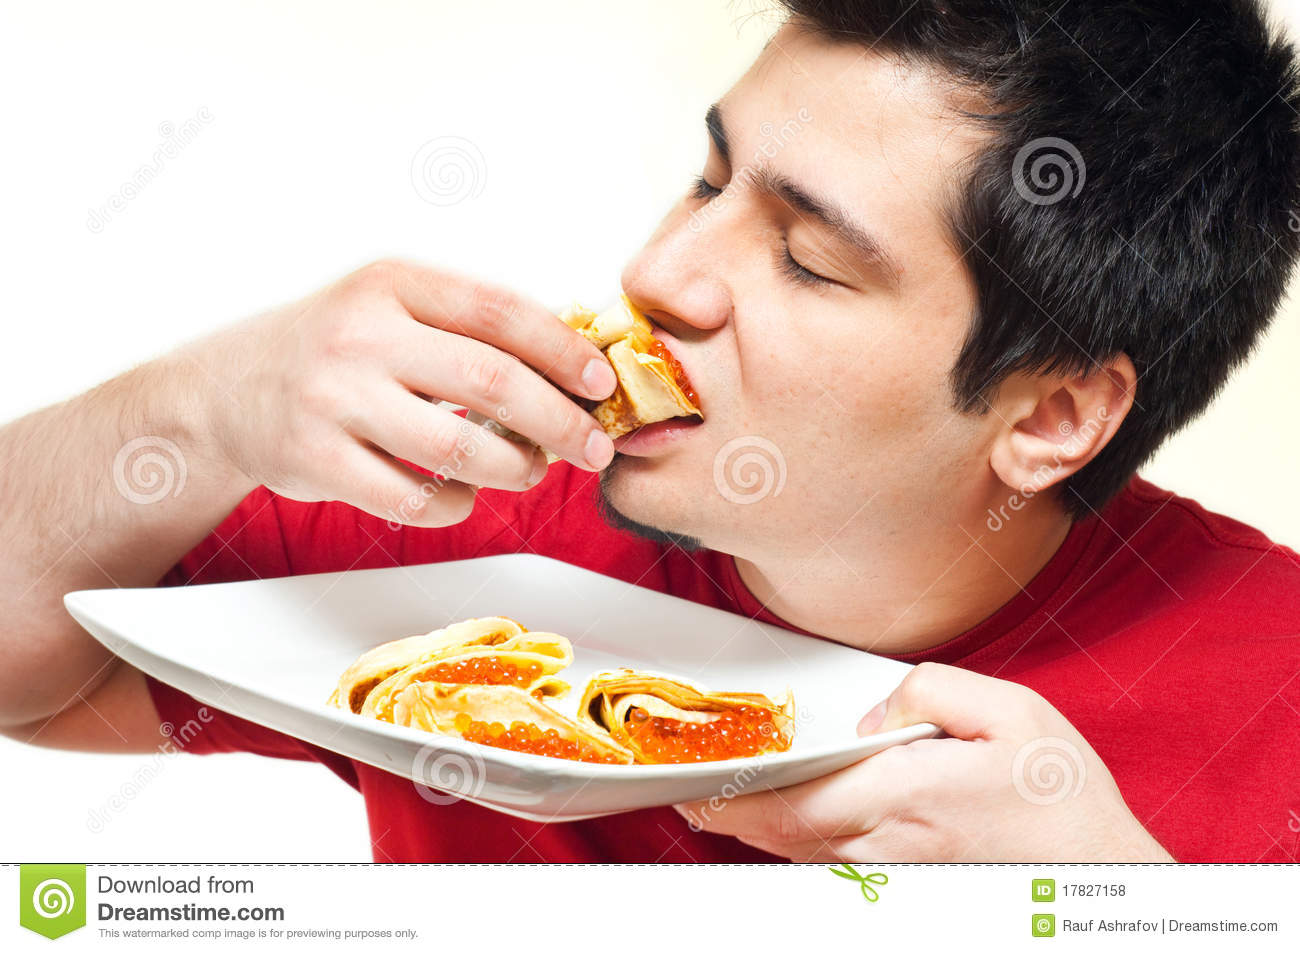 Youung Man Eating Pancakes With Caviar Royalty Free Stock ...